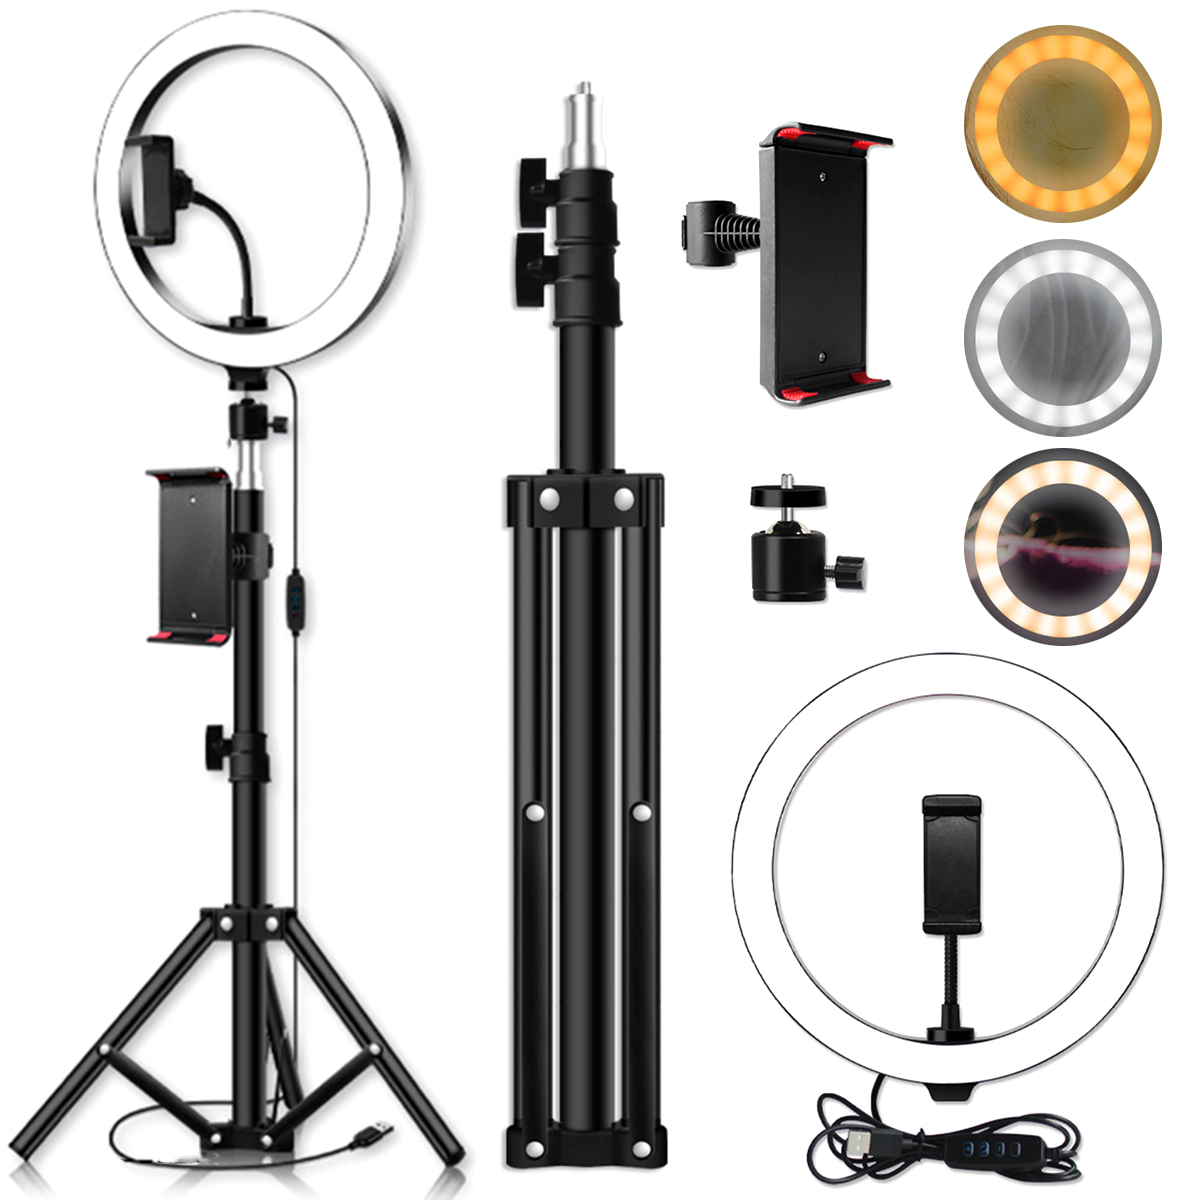 10inch LED Ring Light Dimmable LED Live Video Ring Light Set with Tripod Tablet Clip for